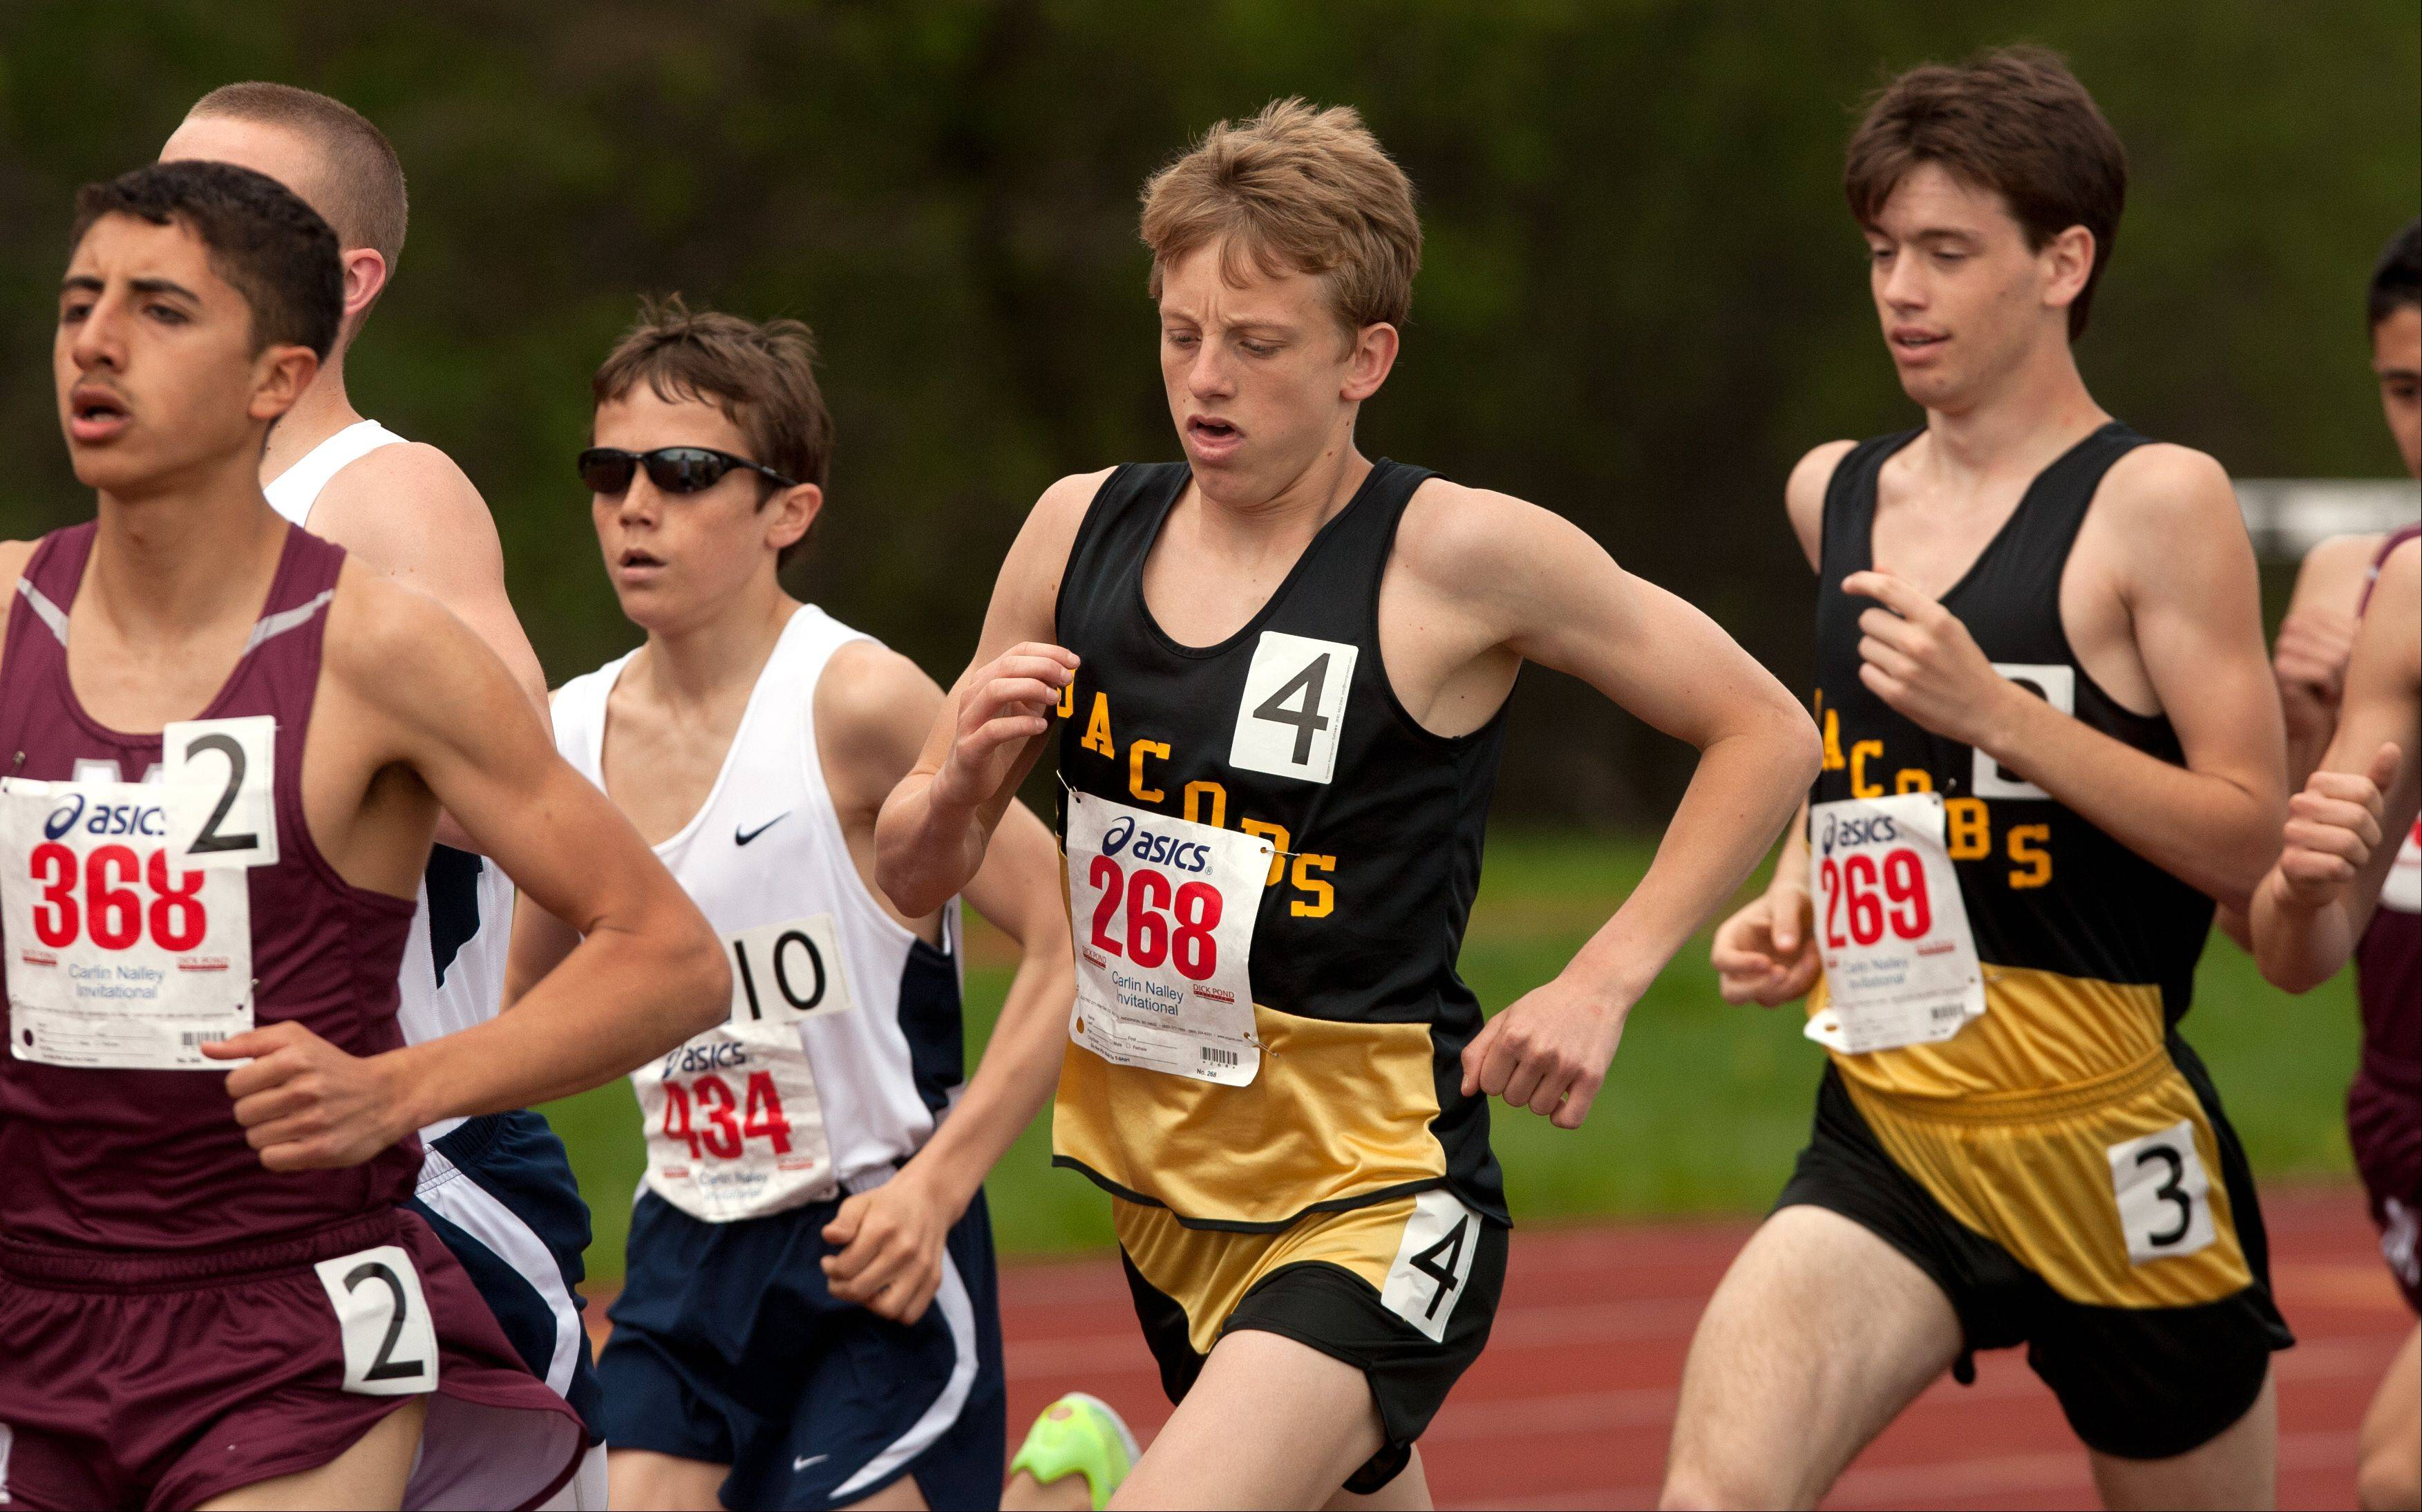 Jacobs� Matt Goldby and Matt Johnson, right, run the 3,200 meters during the 46th annual Carlin Nalley Boys� Track Invitational at Benedictine University in Lisle Saturday.